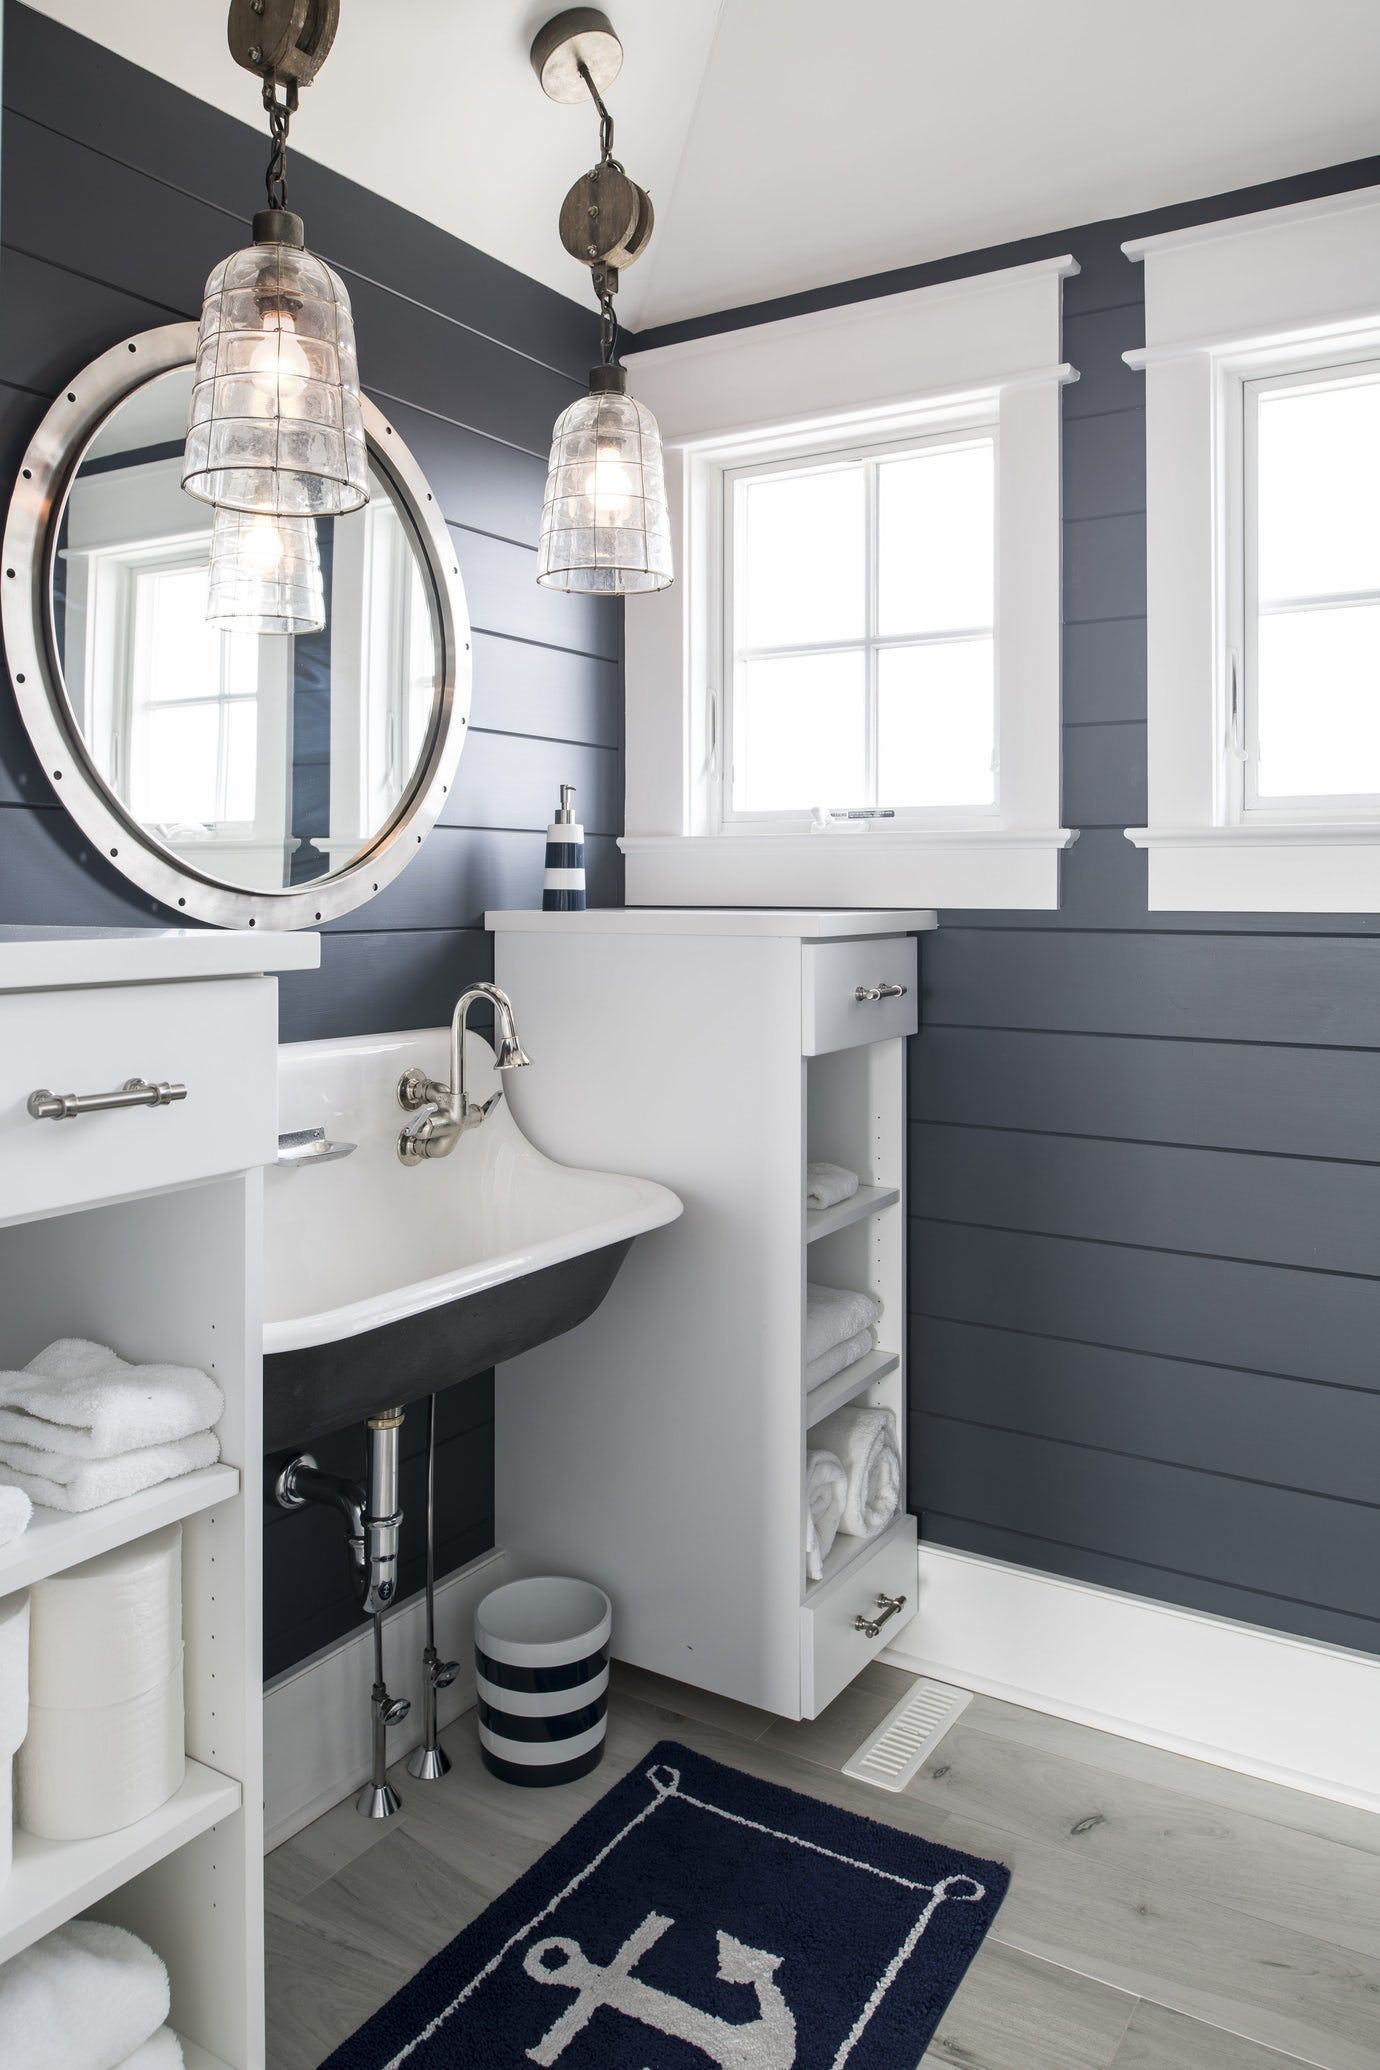 THE BEACH COTTAGE PROJECT Bath Design Detail American Cottage Coastal by Town & Country Kitchen and Bath